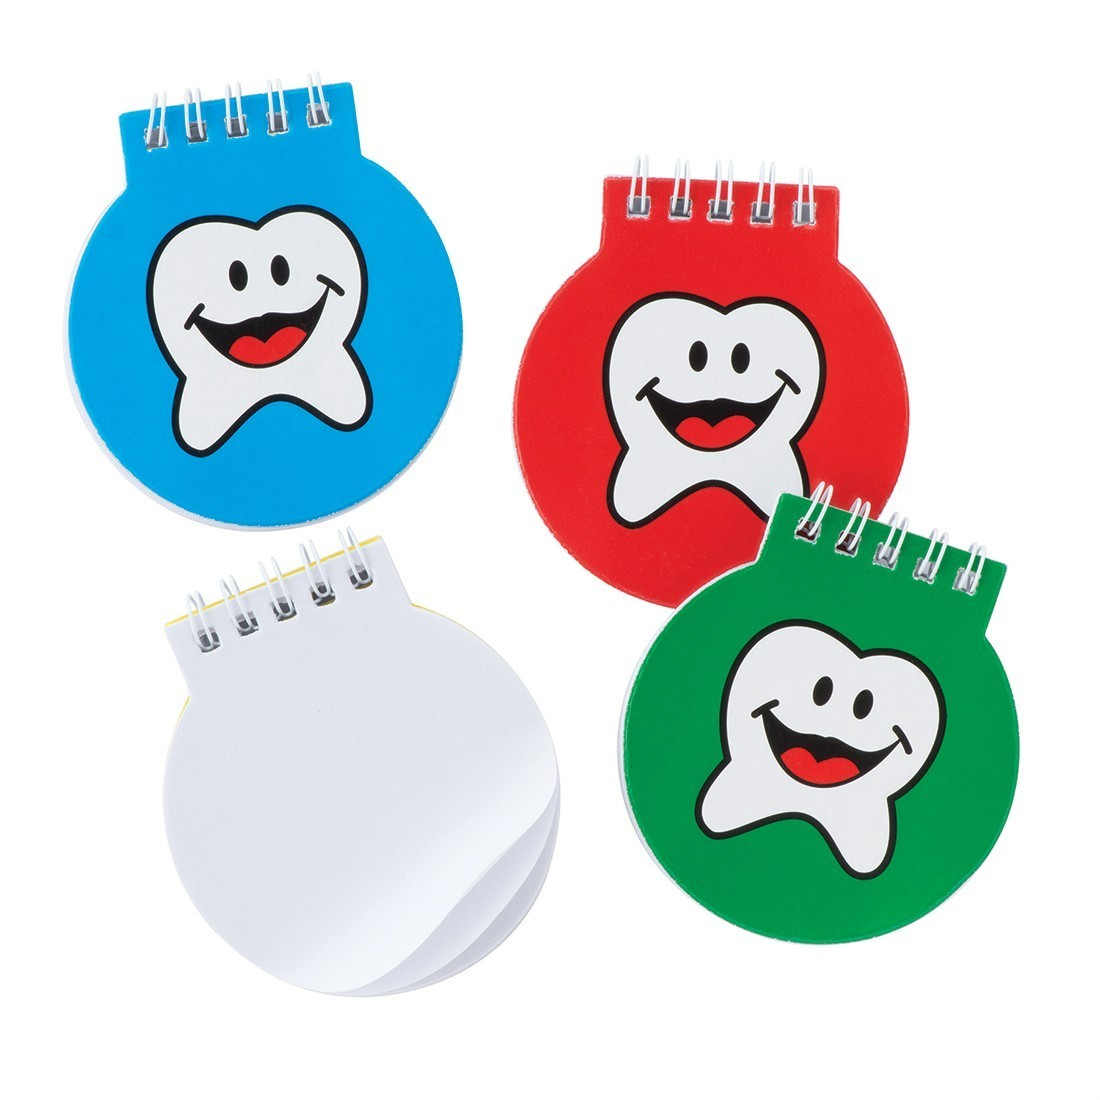 Happy Tooth Notepads [image]